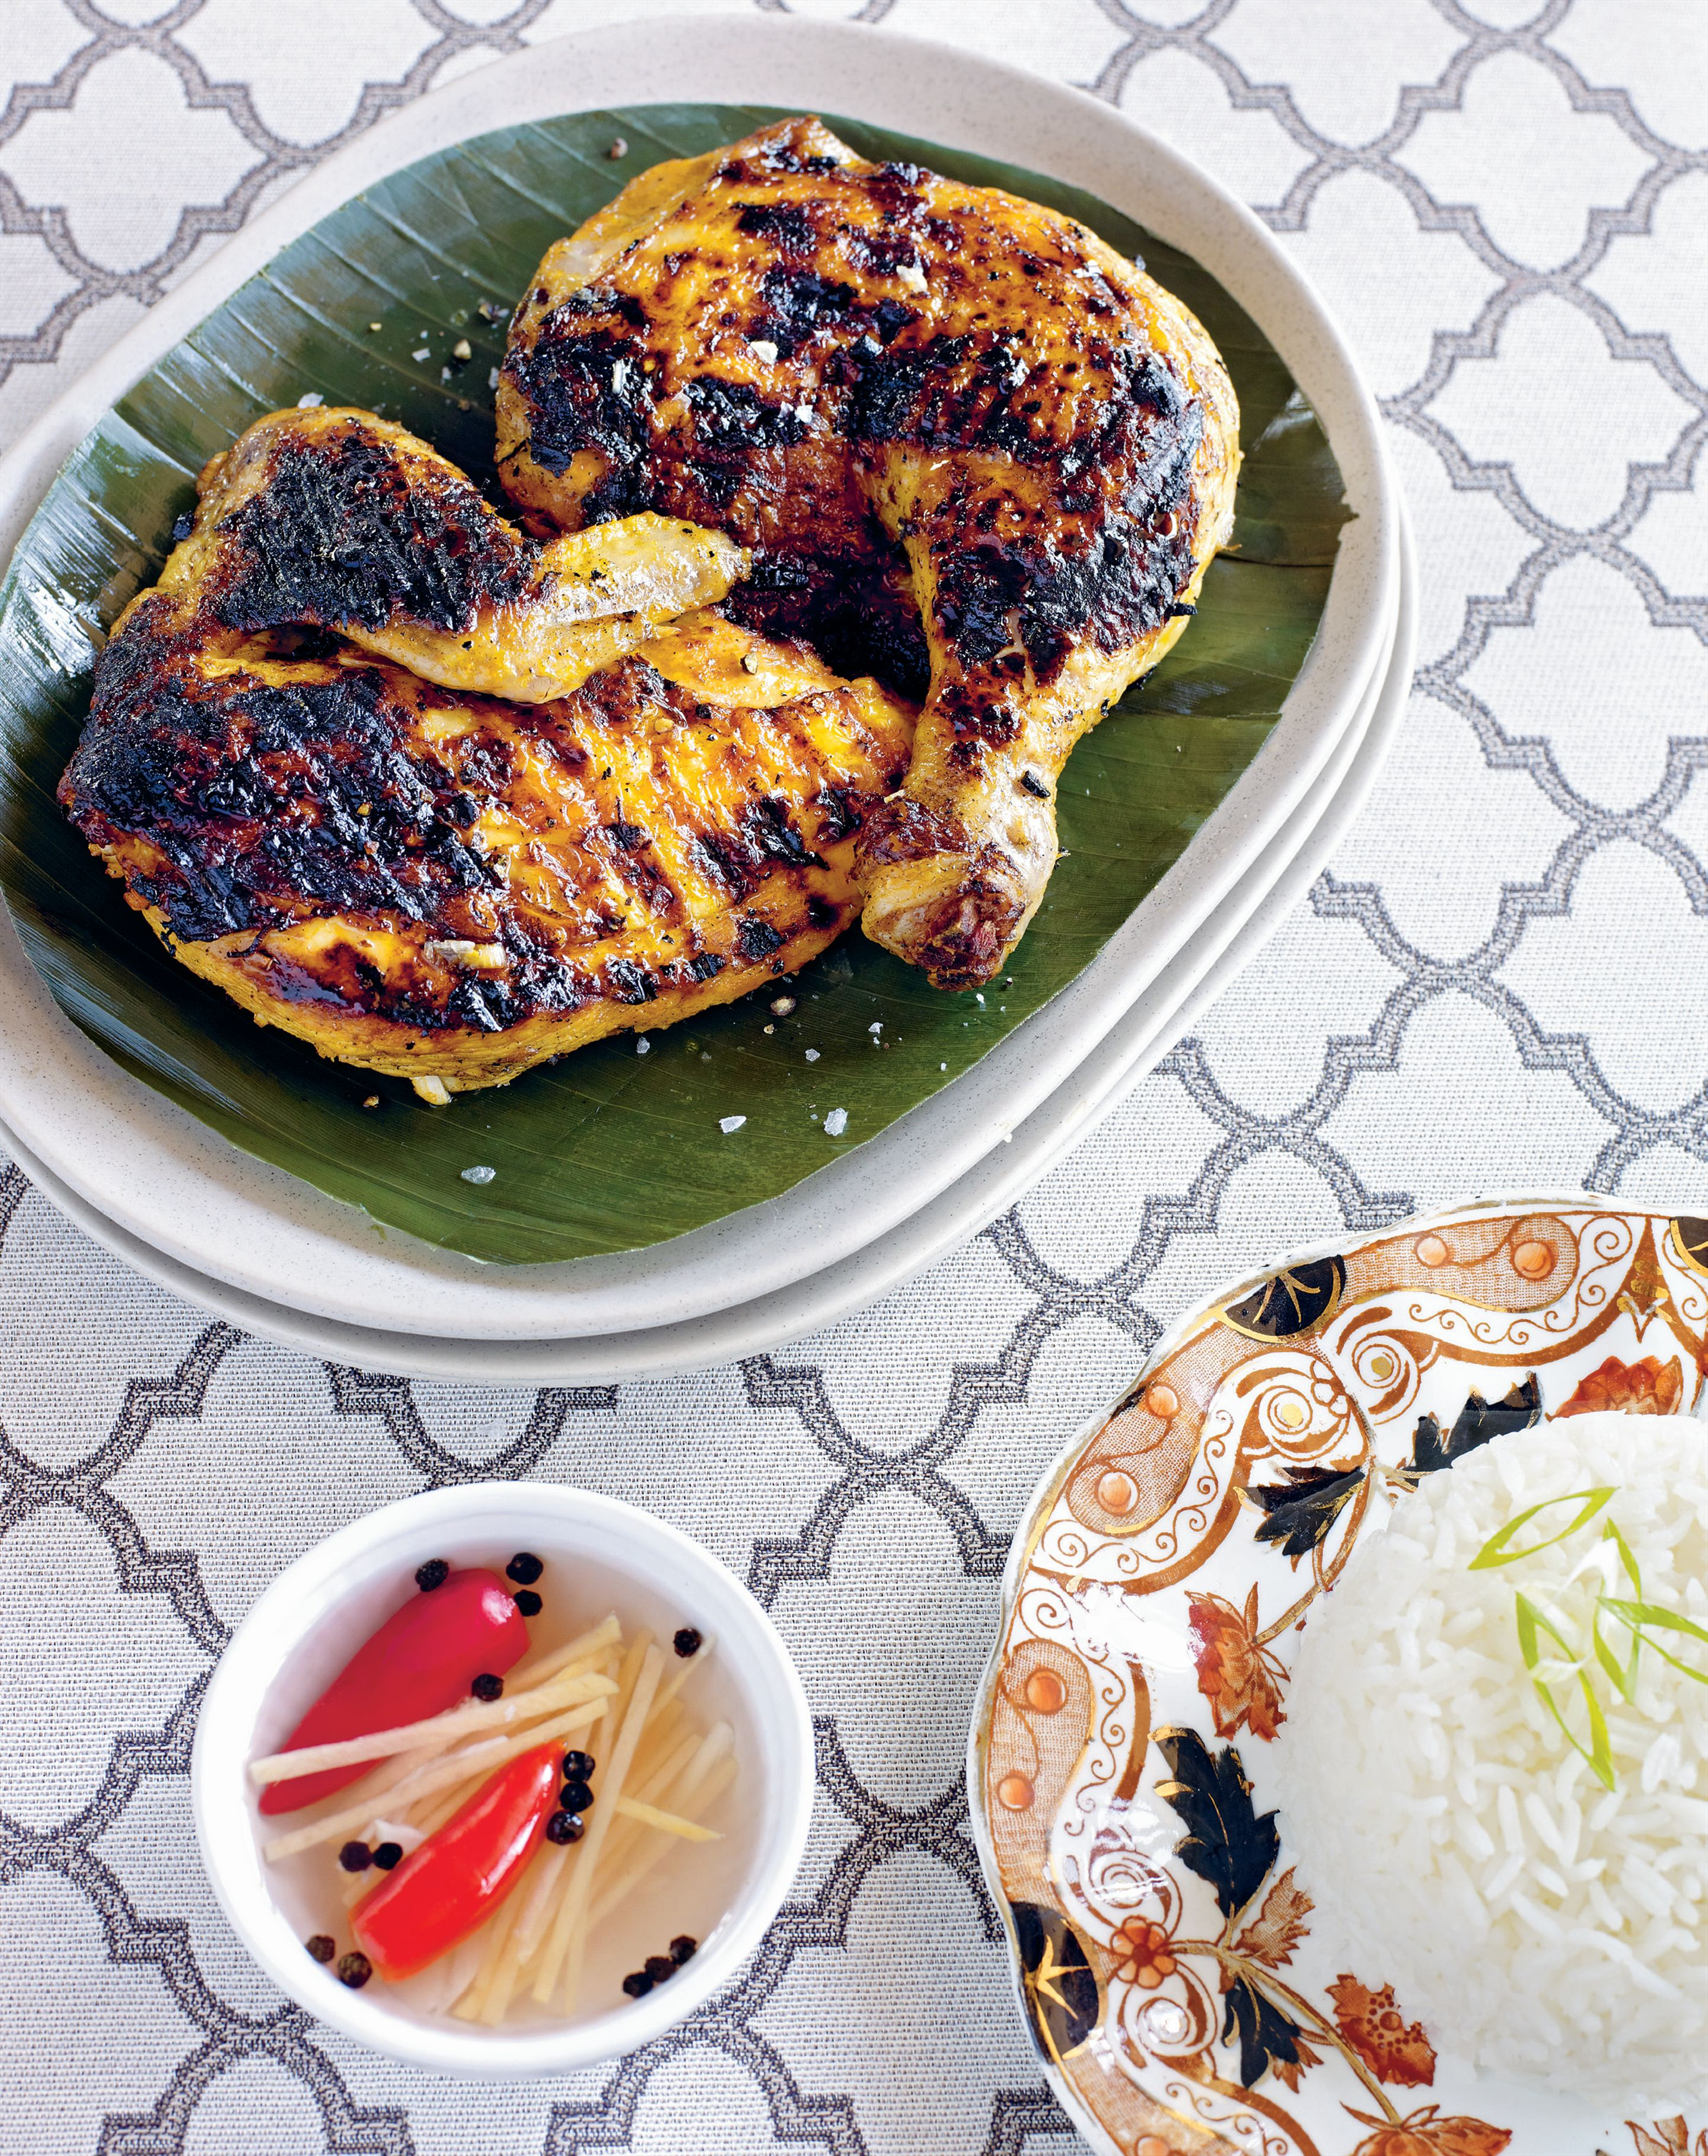 Chargrilled annatto and lemongrass chicken